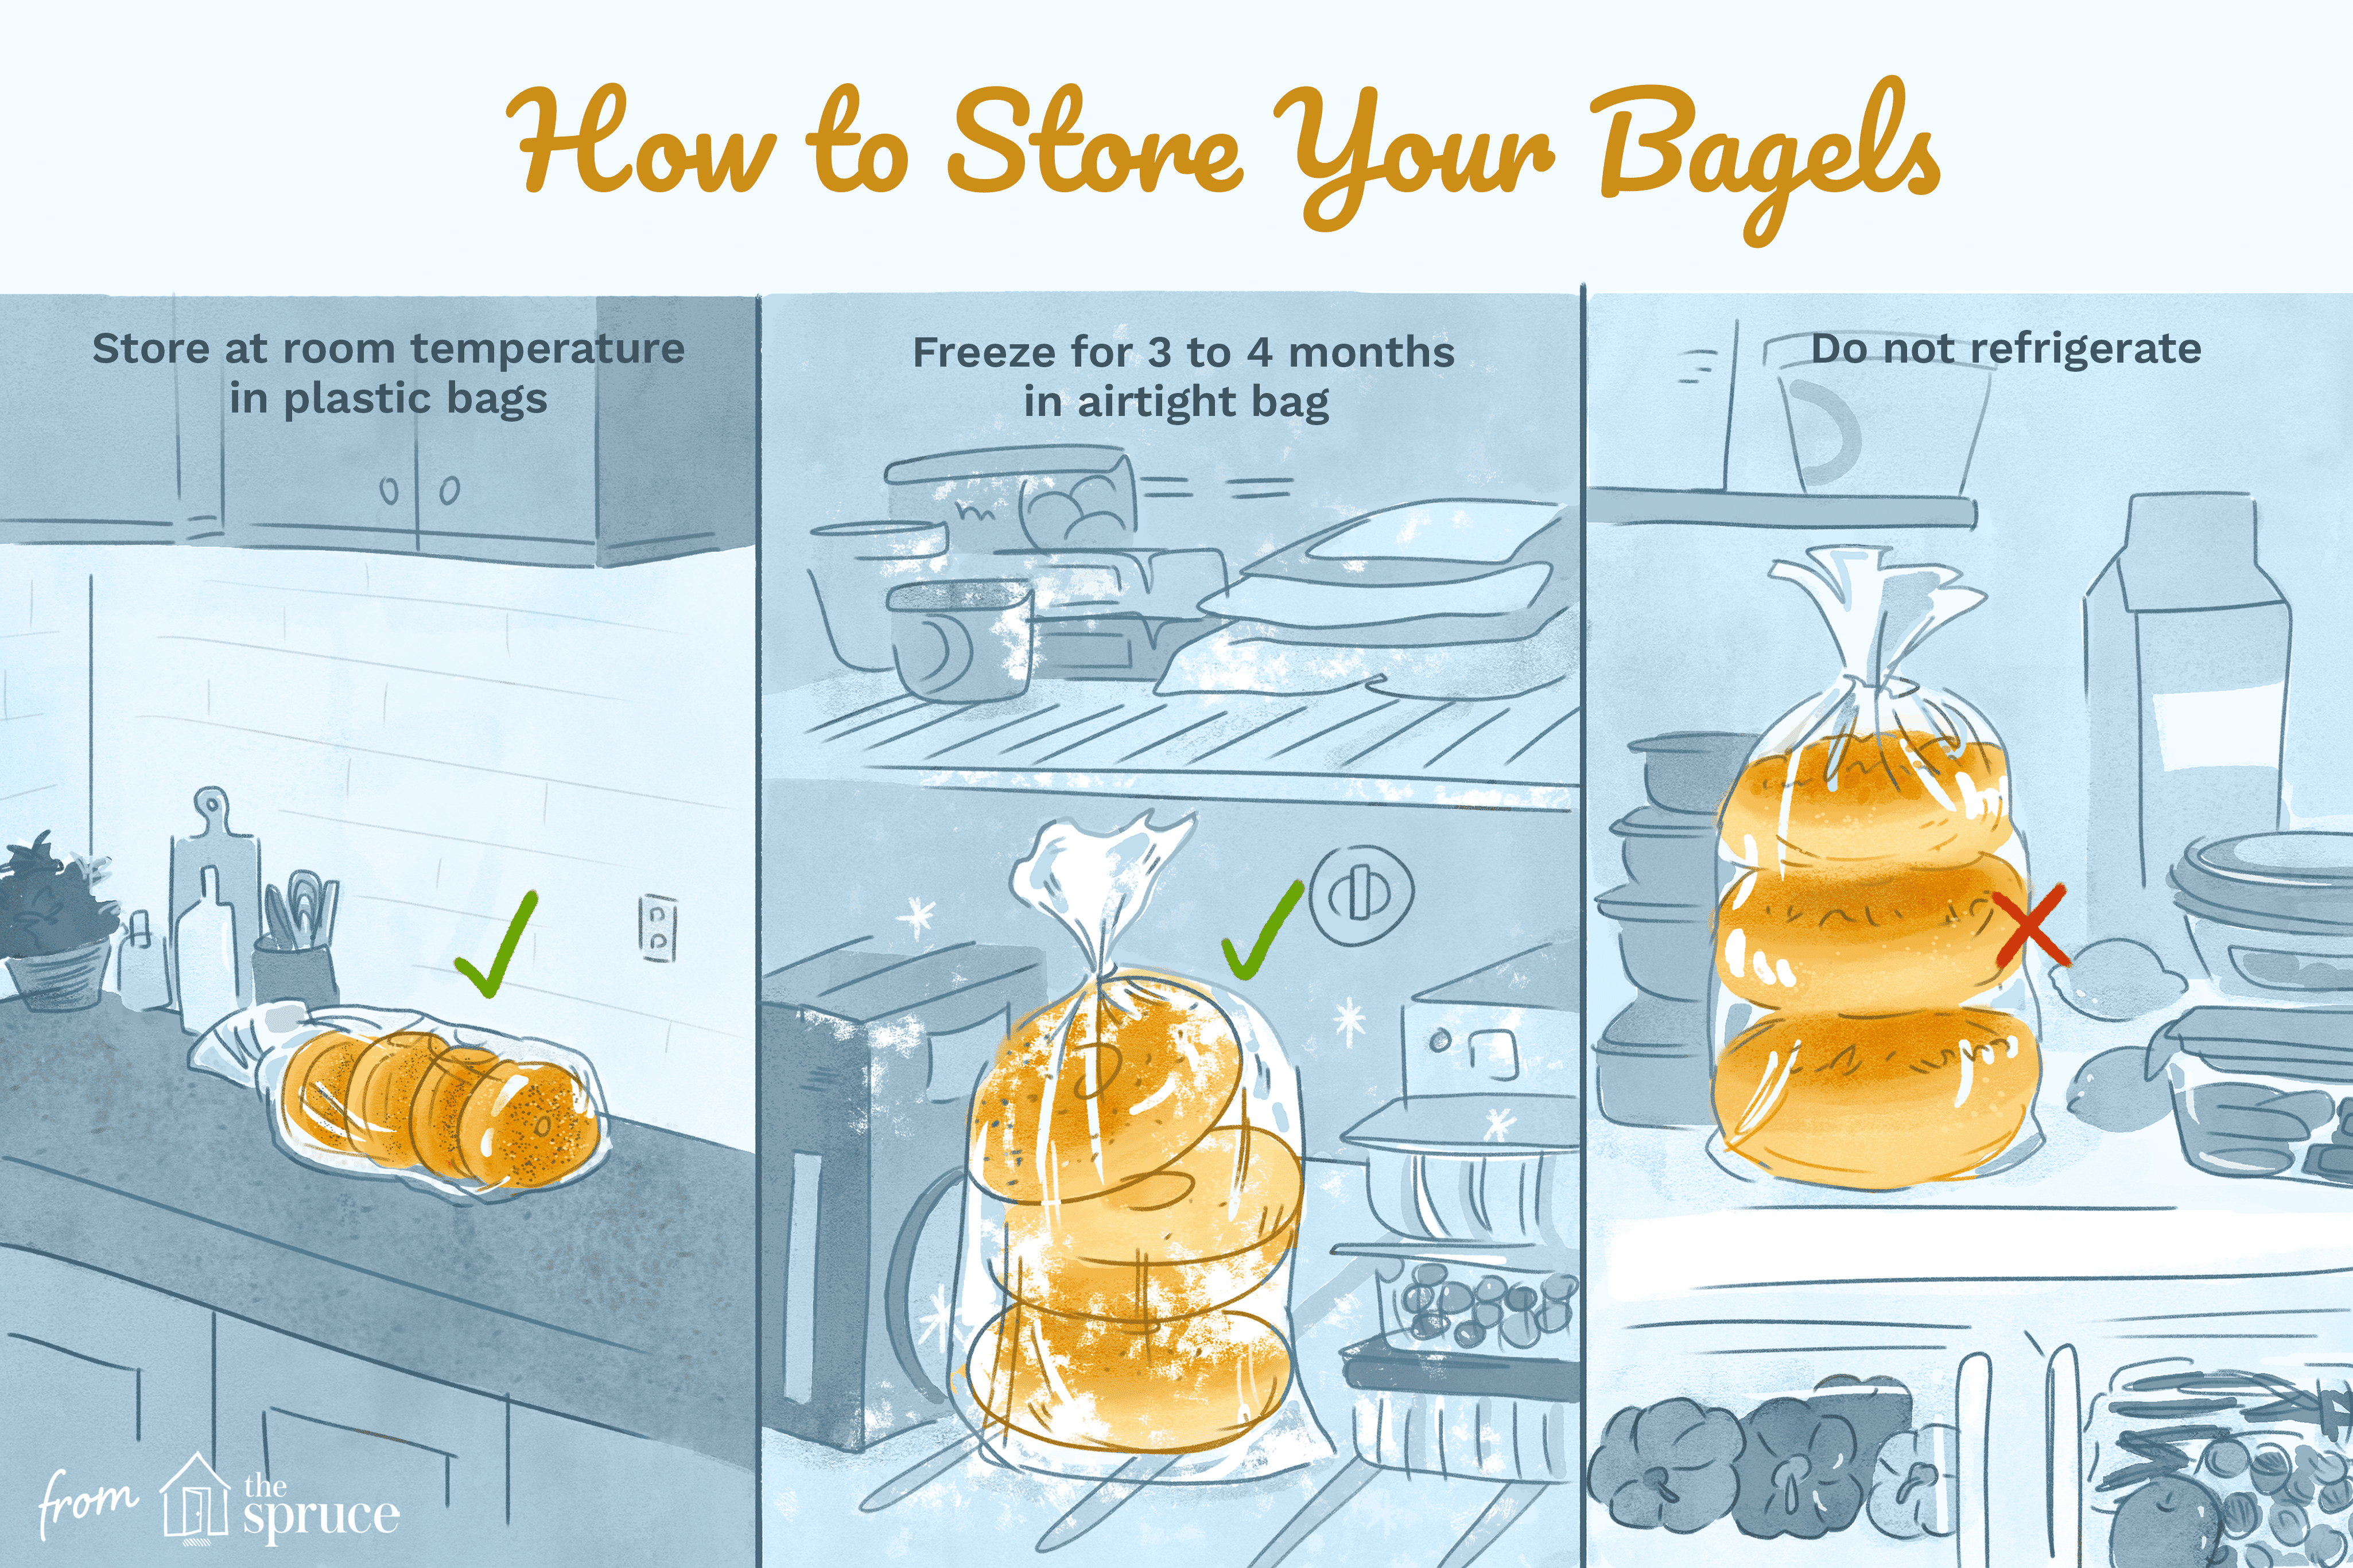 illustration showing how to properly store bagels